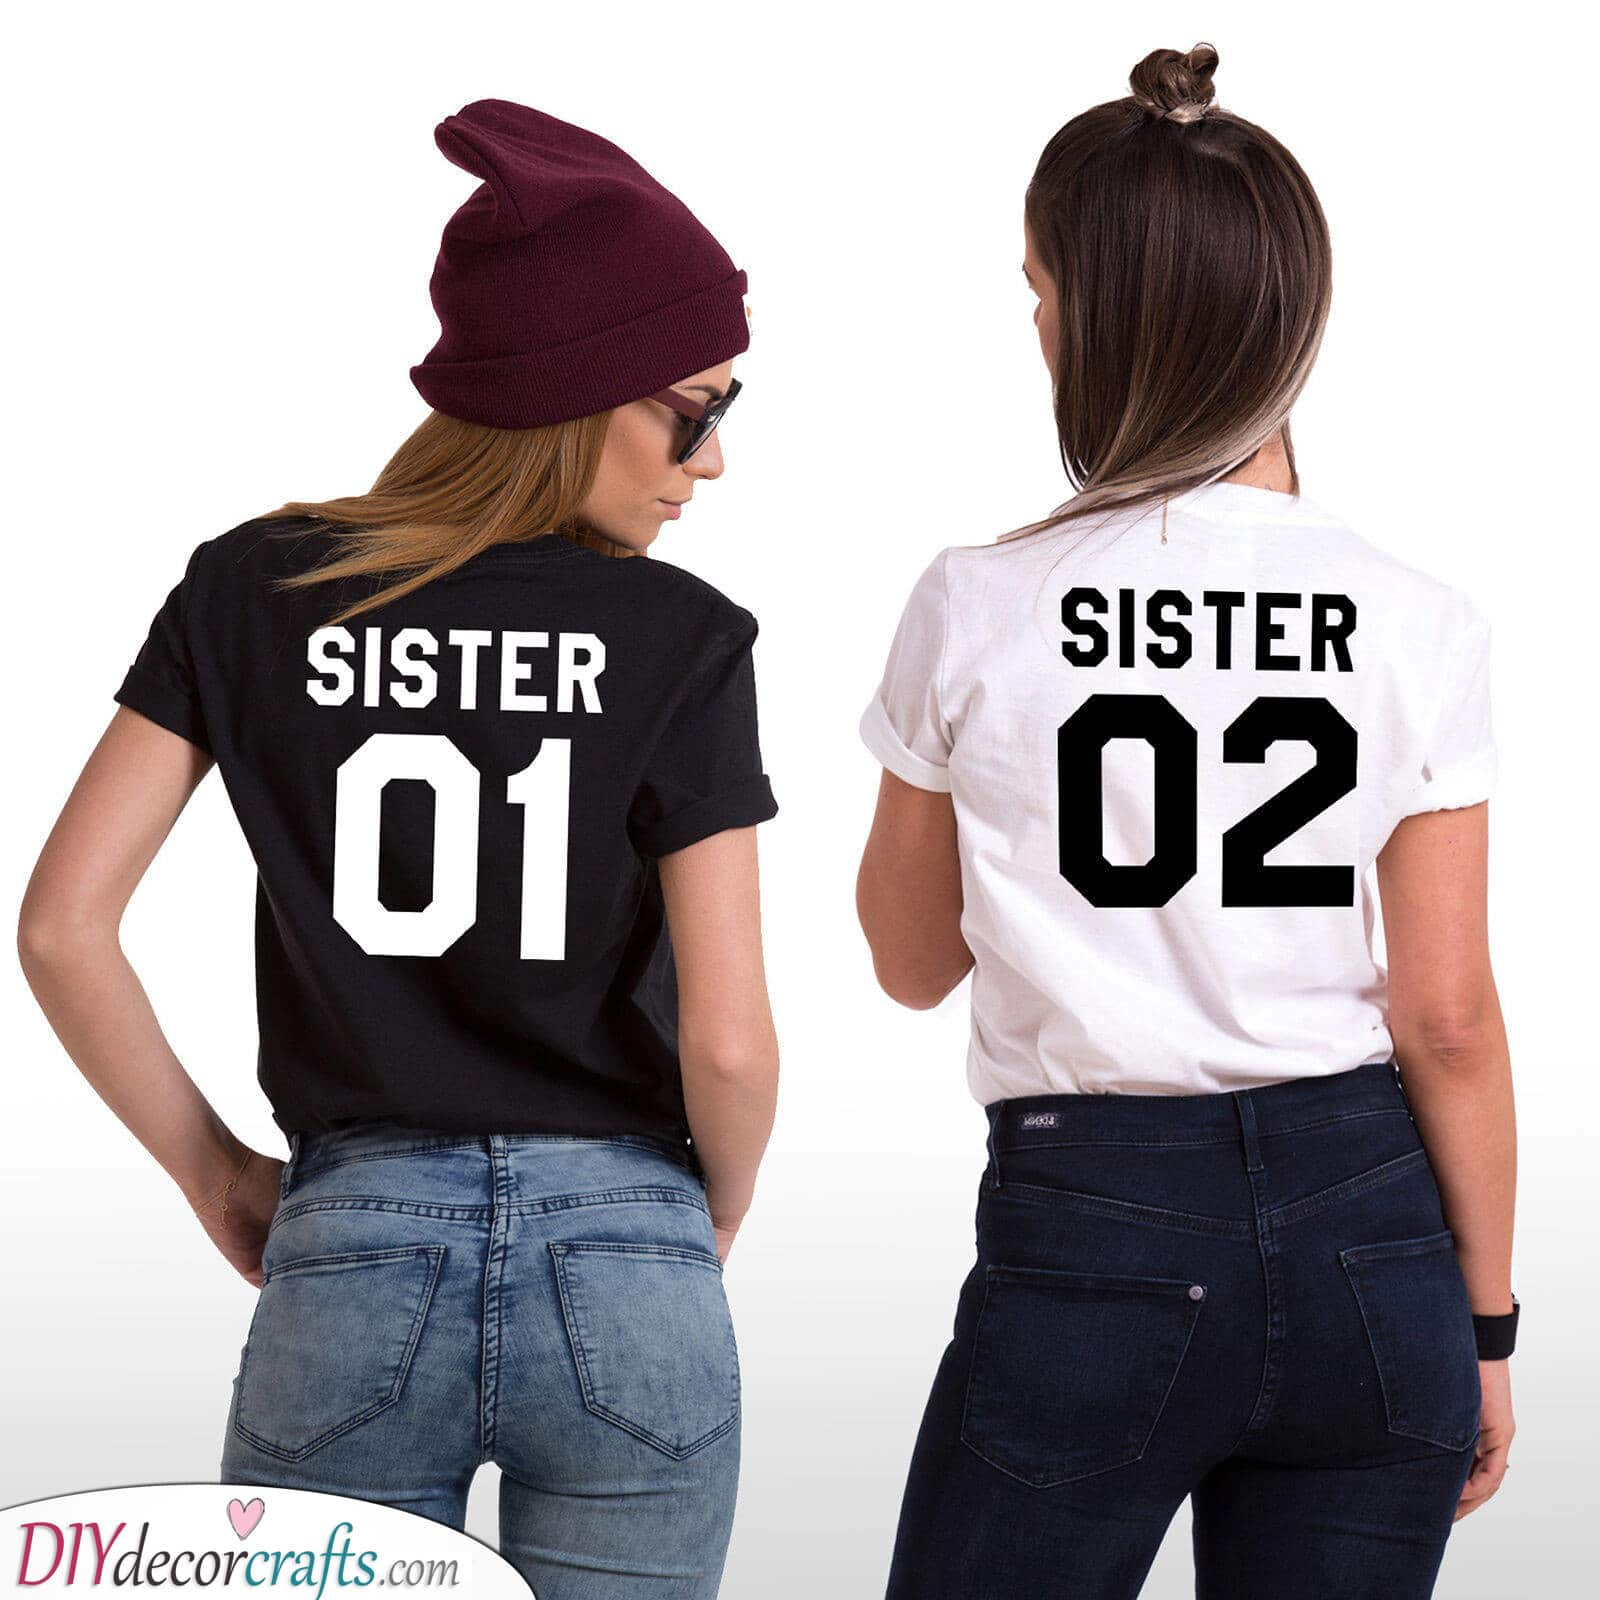 Matching T-Shirts - Perfect for Siblings